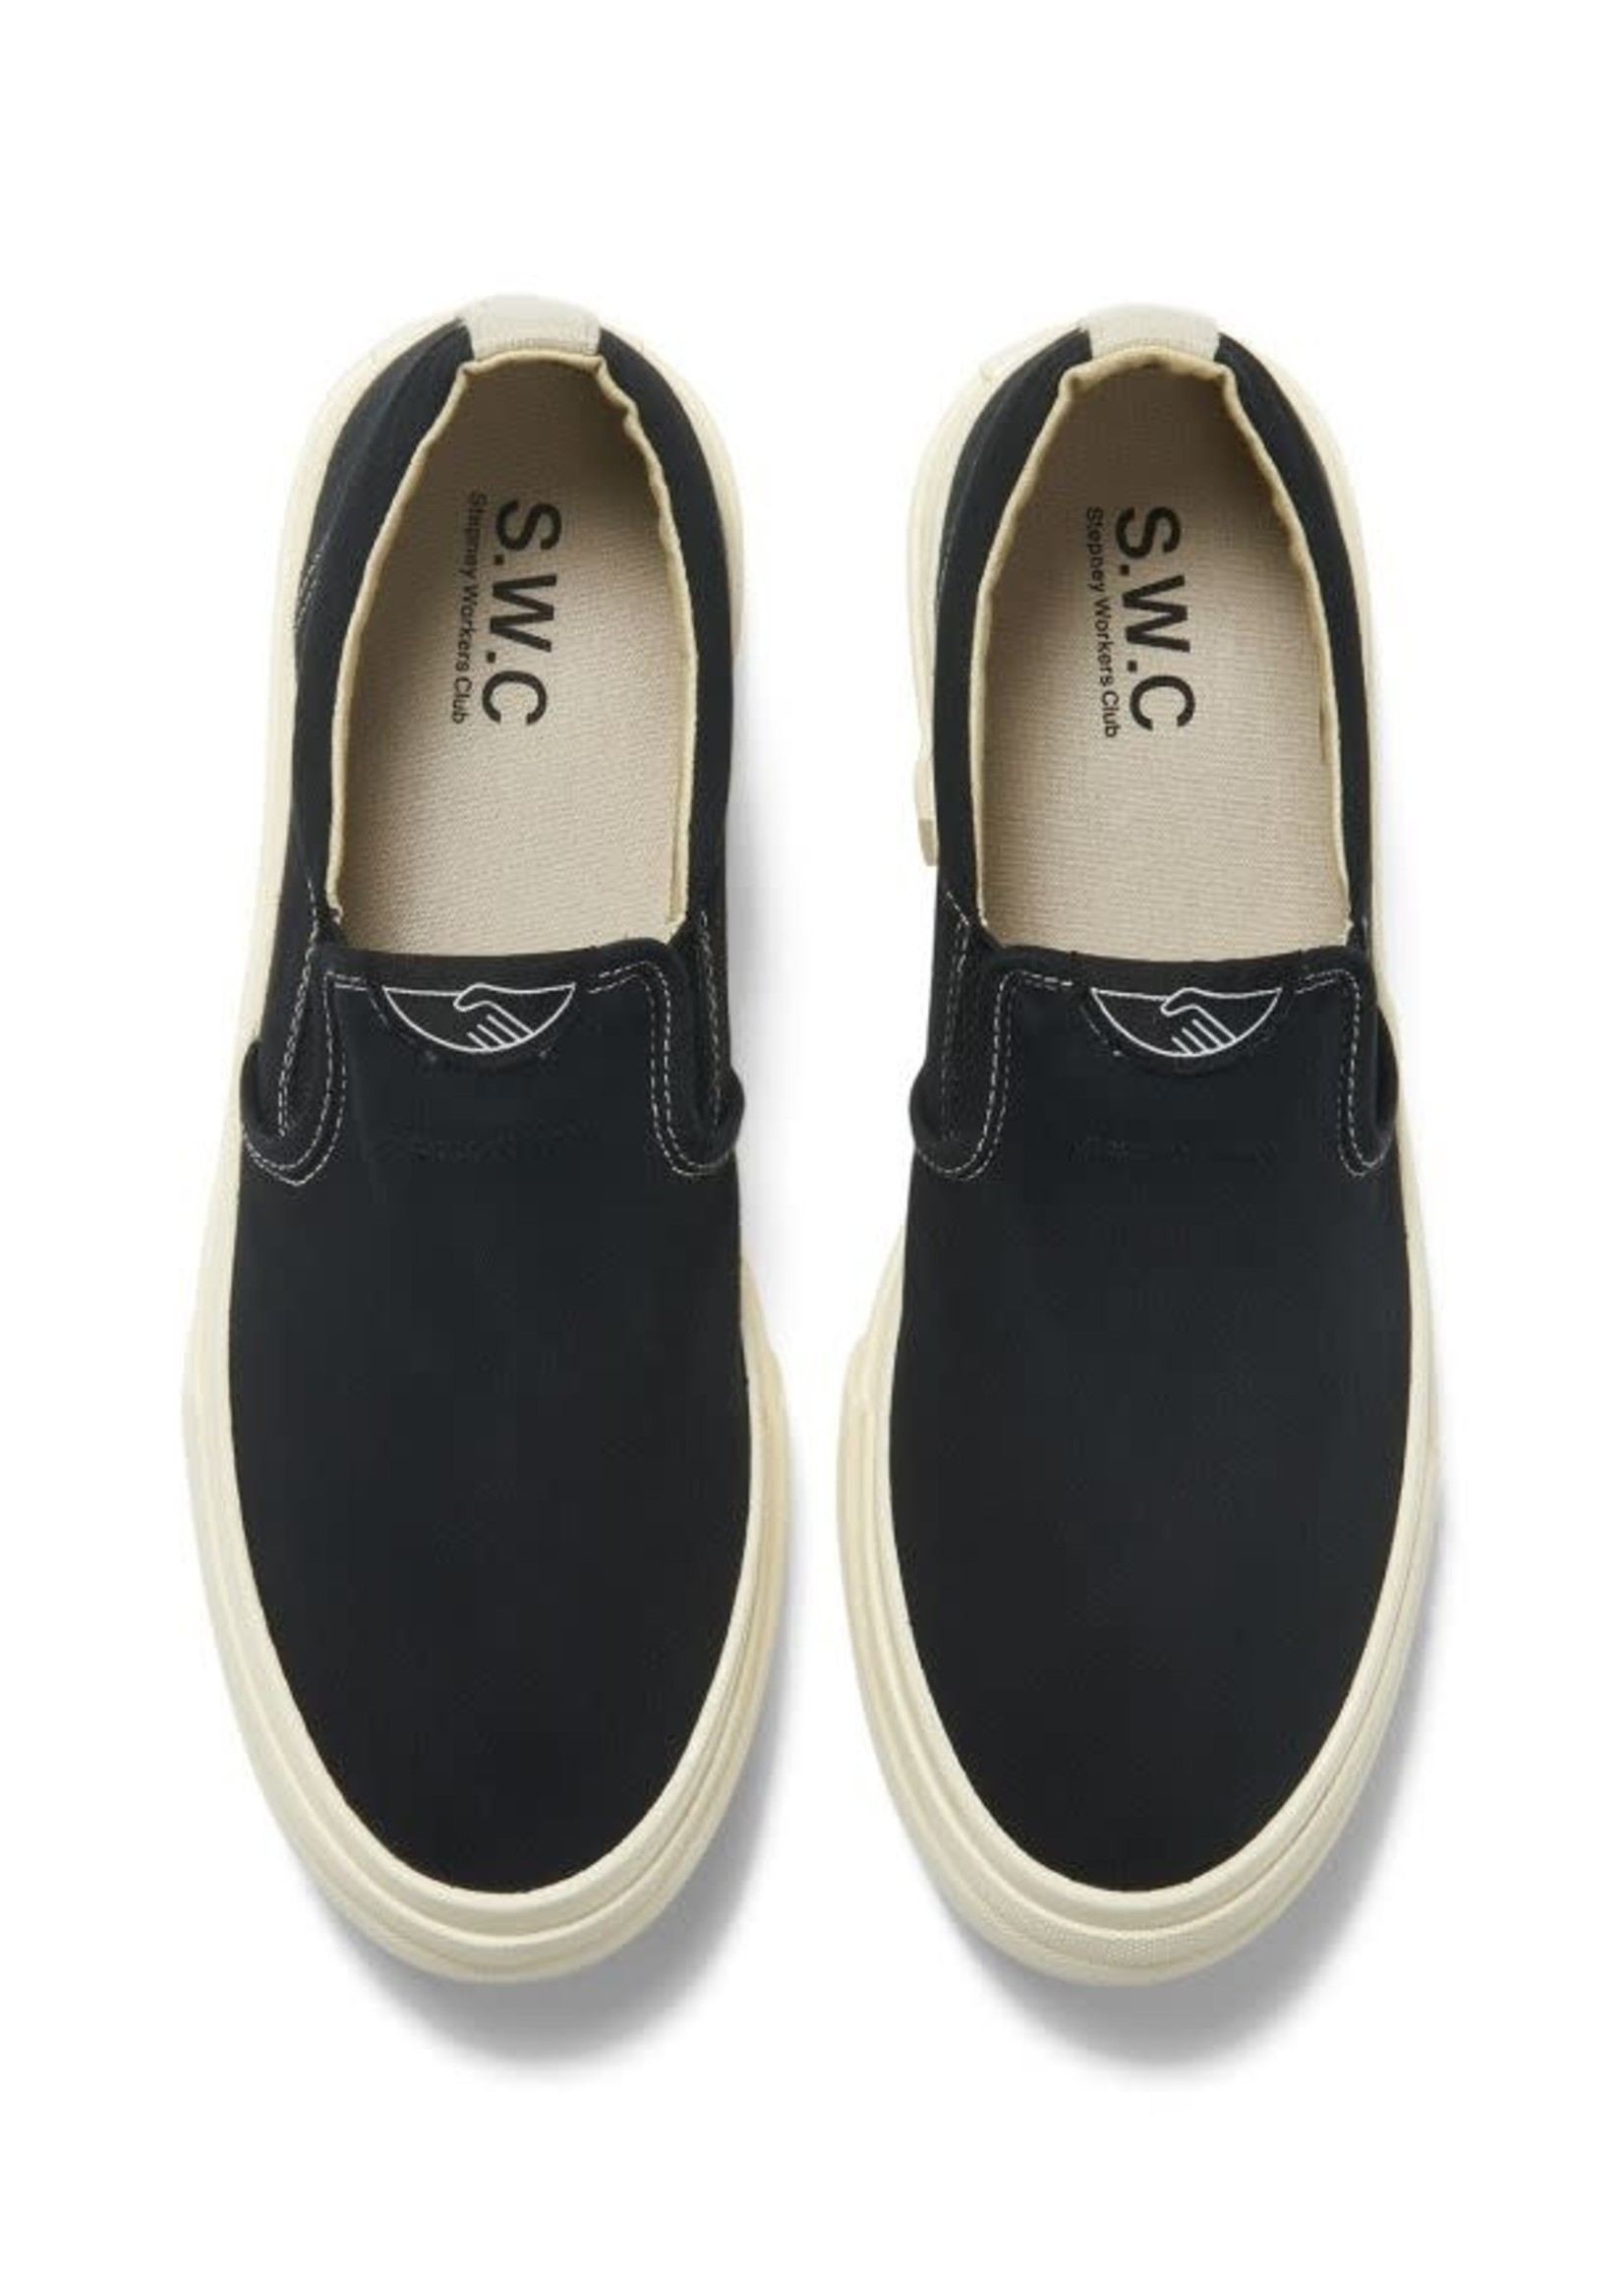 Stepney Workers Club Lister Slip-on in Black Canvas